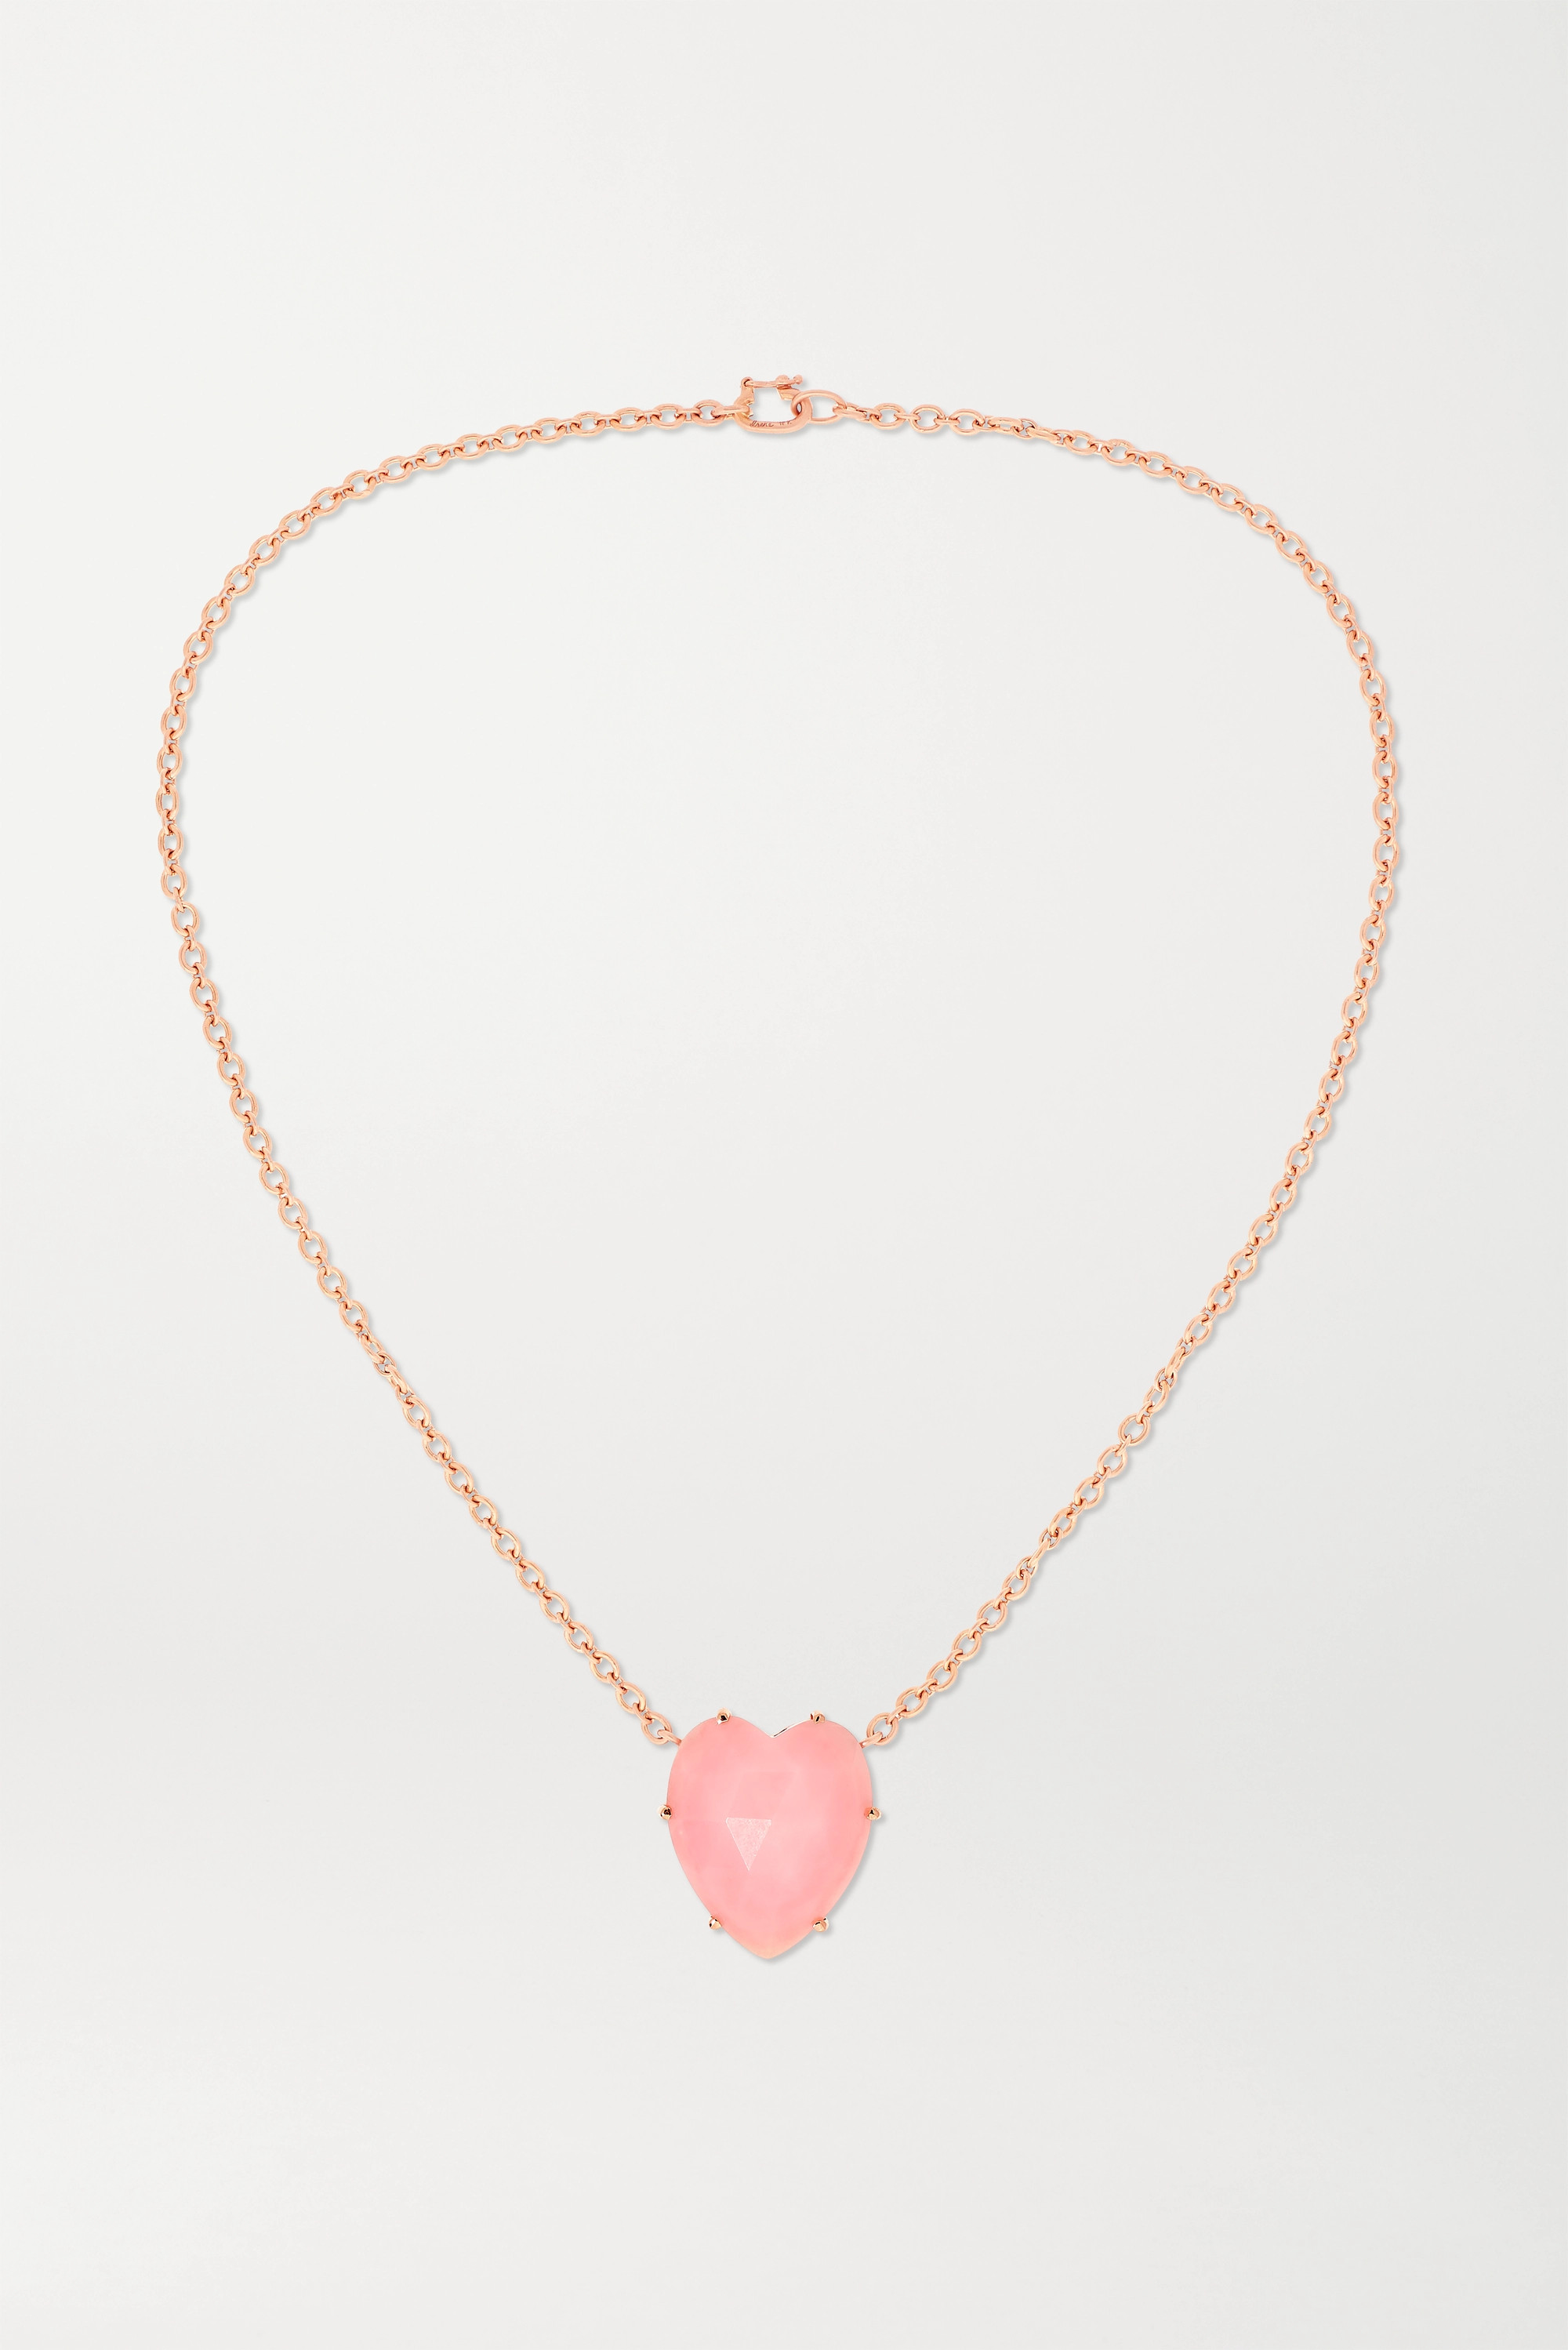 Irene Neuwirth Collier en or rose 18 carats et opale Love